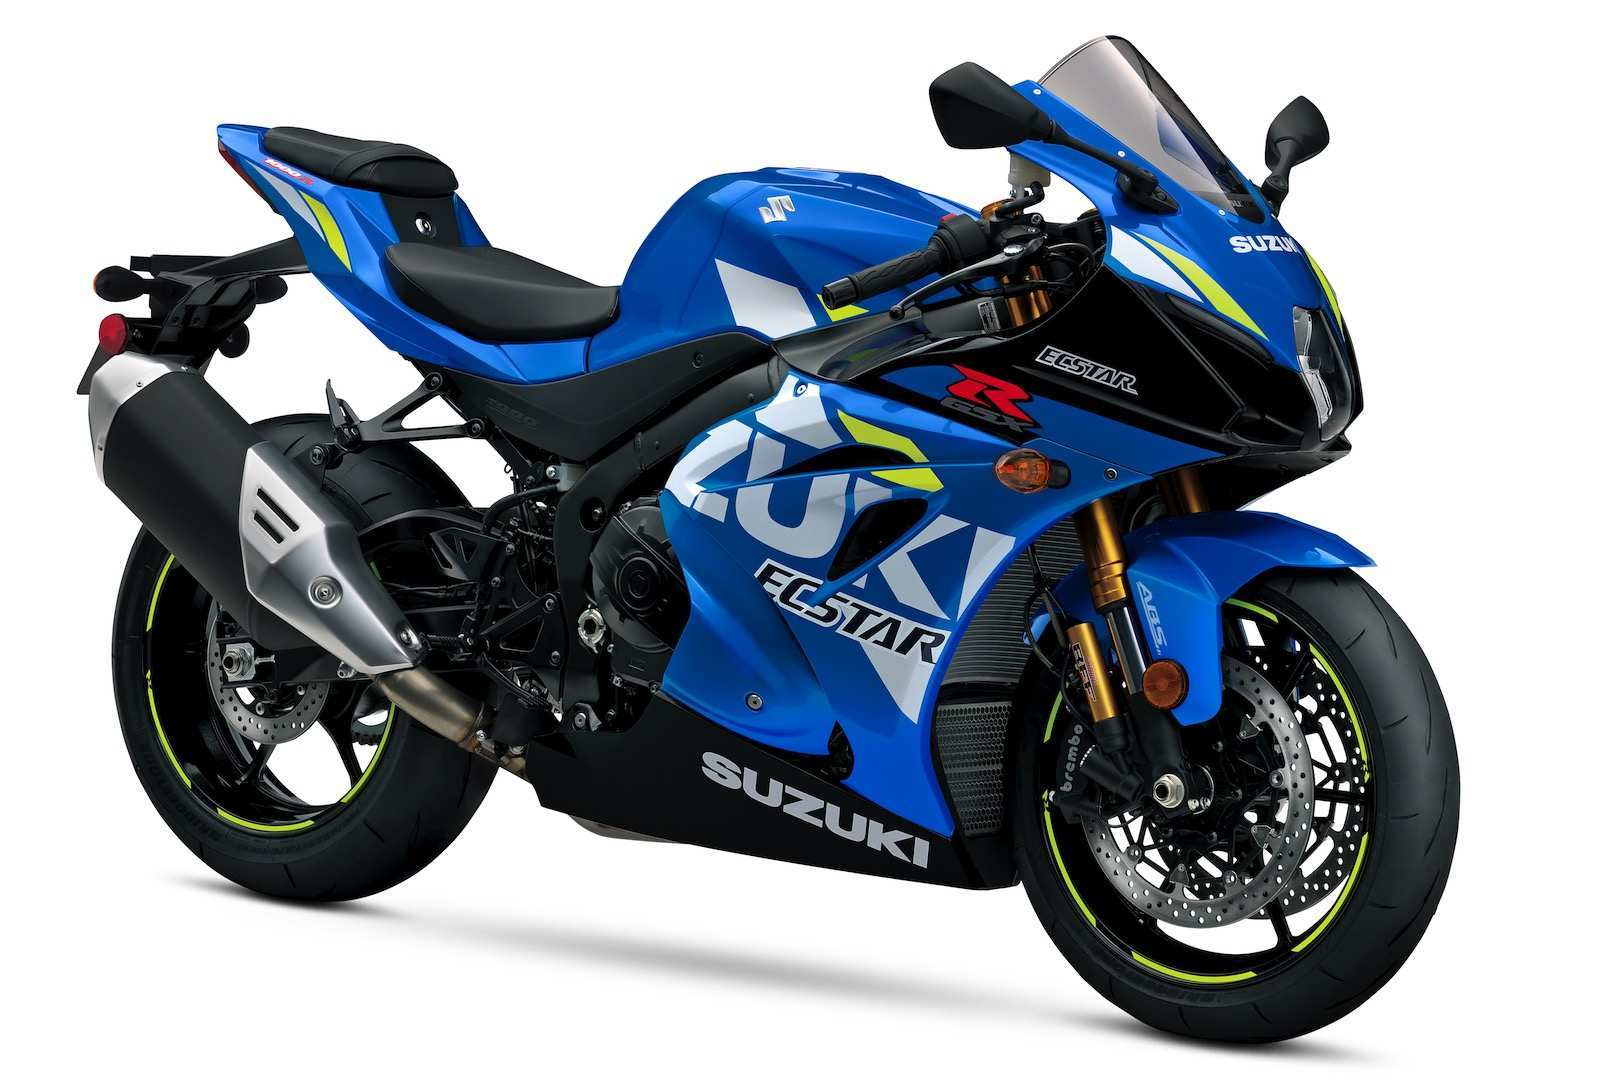 98 All New 2019 Suzuki Gsx R750 Picture for 2019 Suzuki Gsx R750